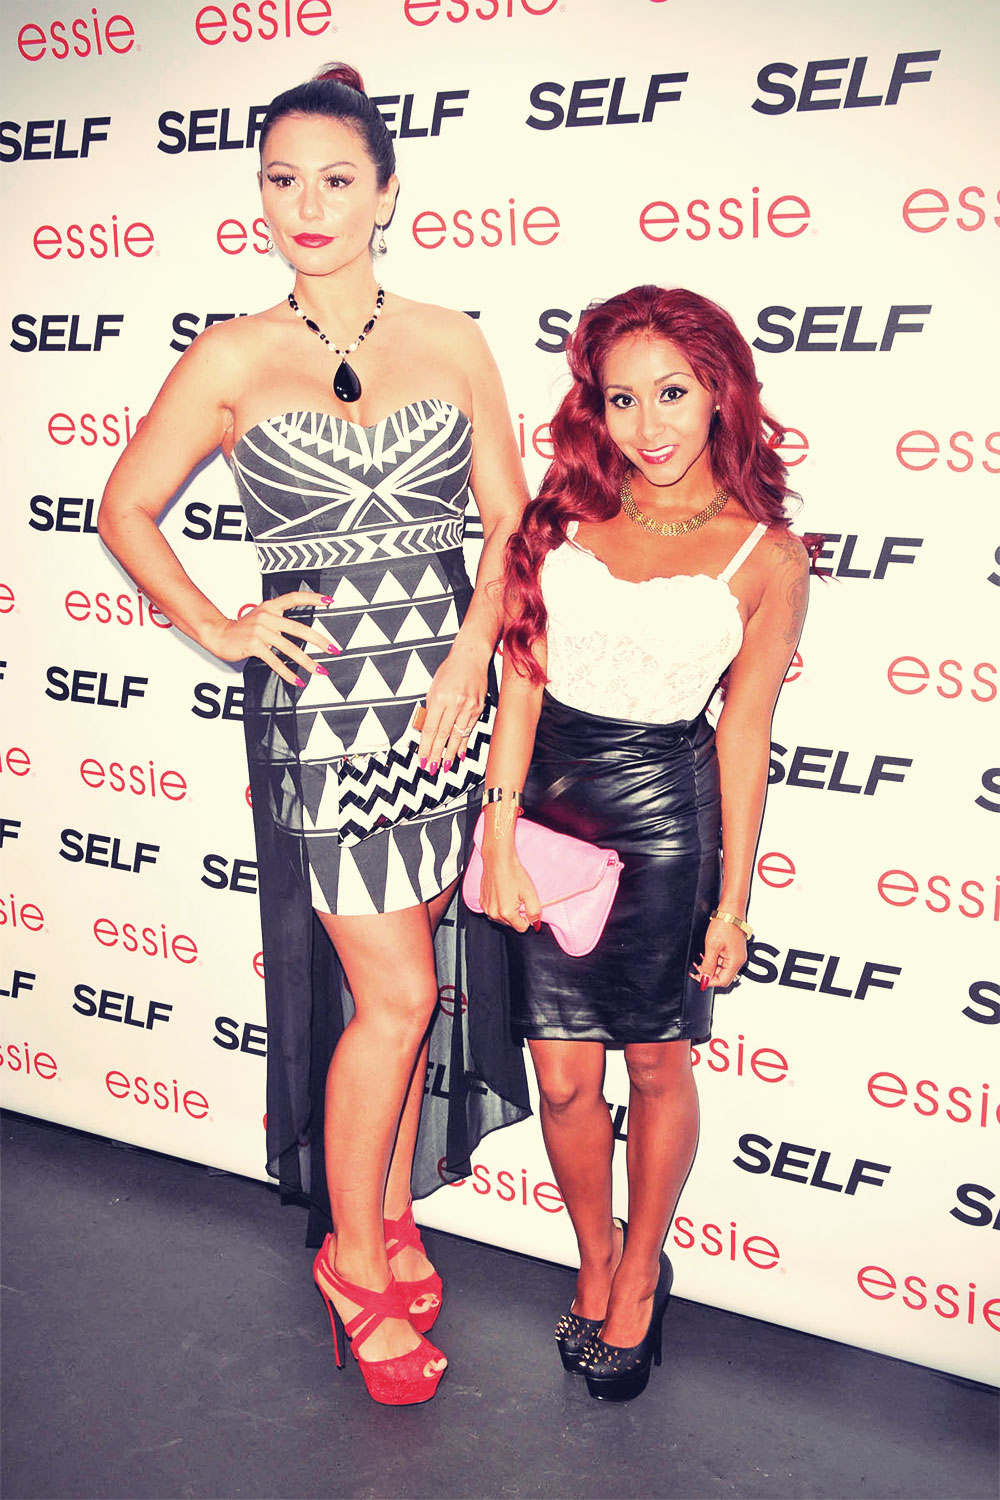 Nicole Polizzi attends Self Magazine's Rock The Summer Party held at Kiss & Fly